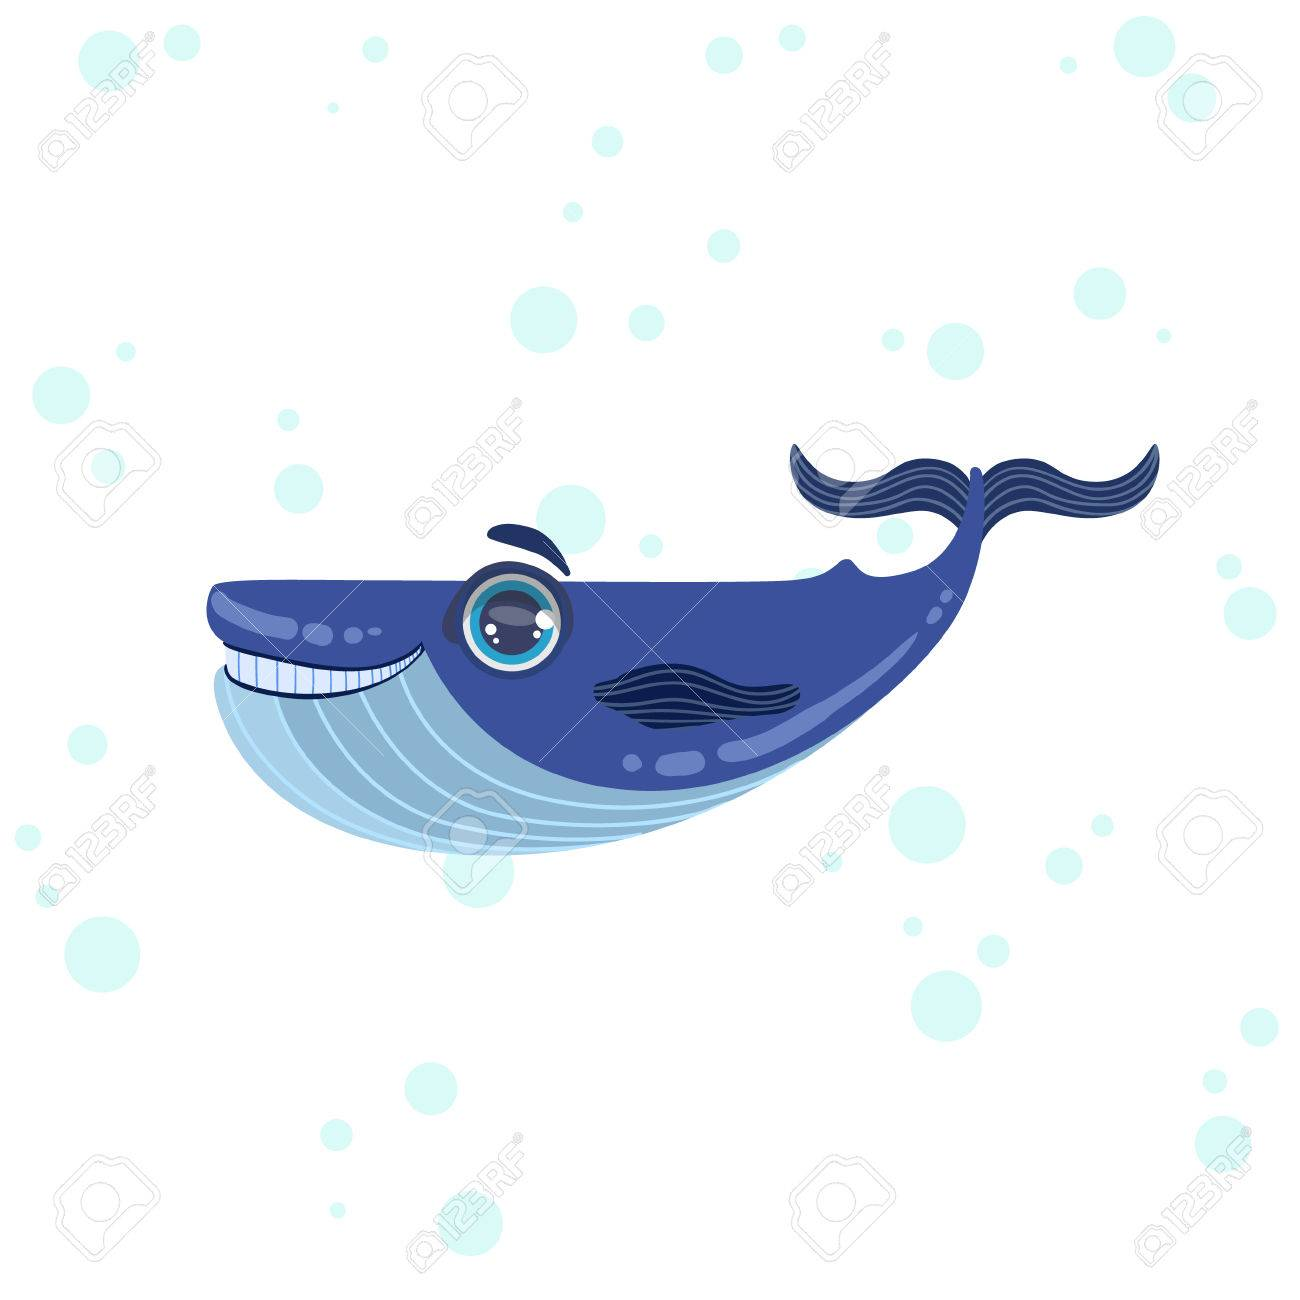 Cute whale in water cartoon isolated illustration stock photography - Blue Whale Bright Color Cartoon Style Vector Illustration Isolated On White Background Stock Vector 57440855